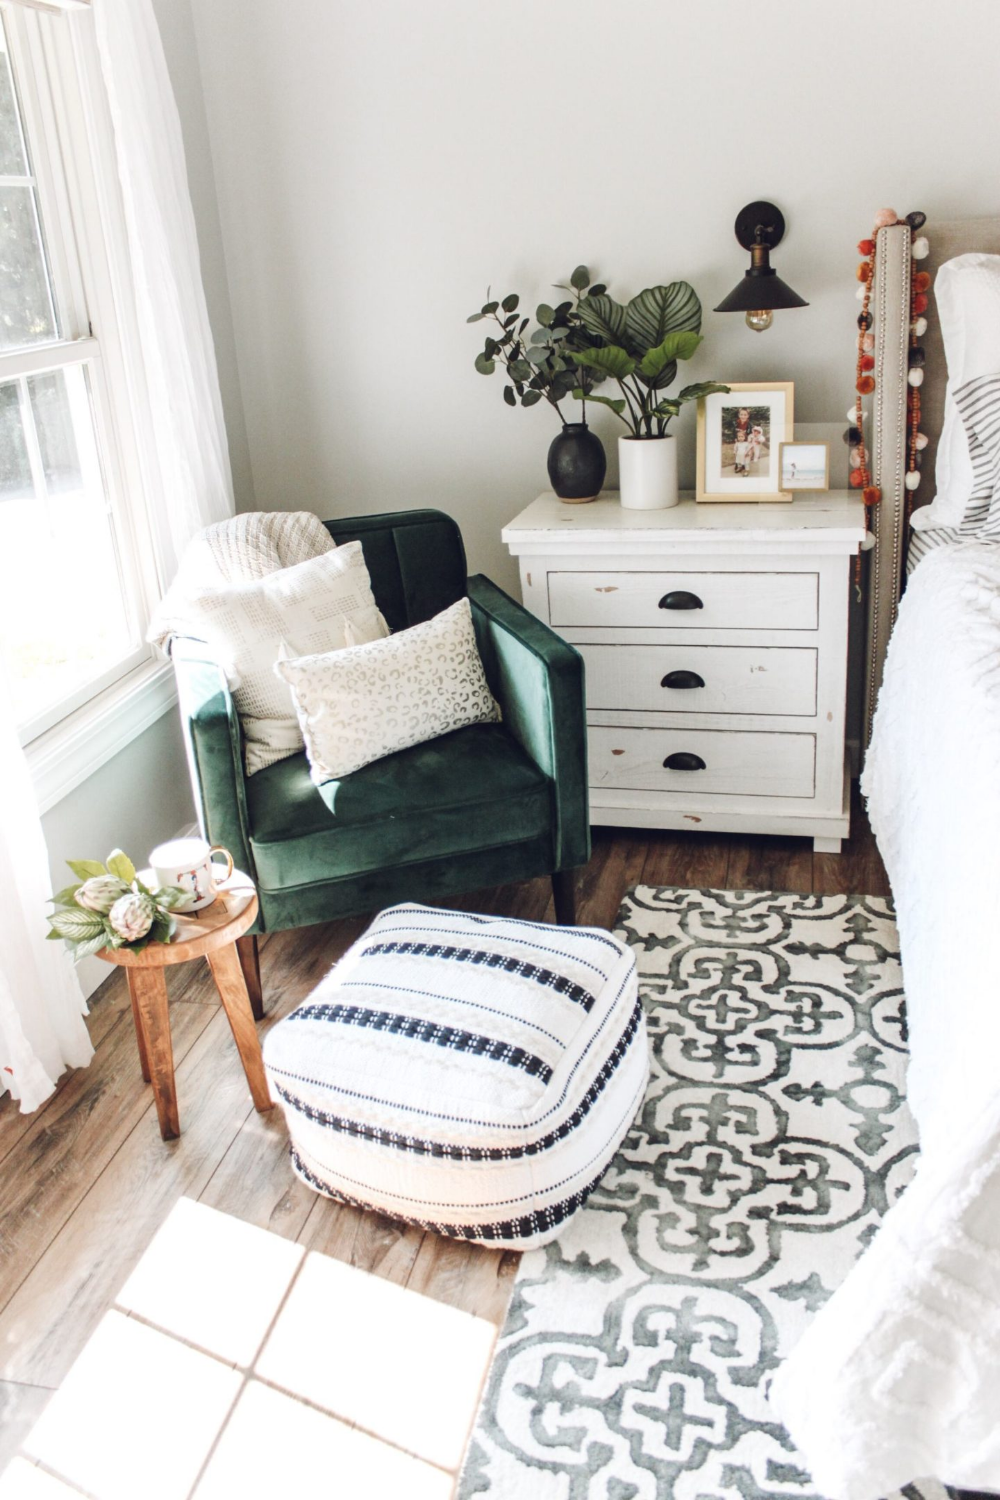 Add Boho Style to your Home | Inspired Reality % %